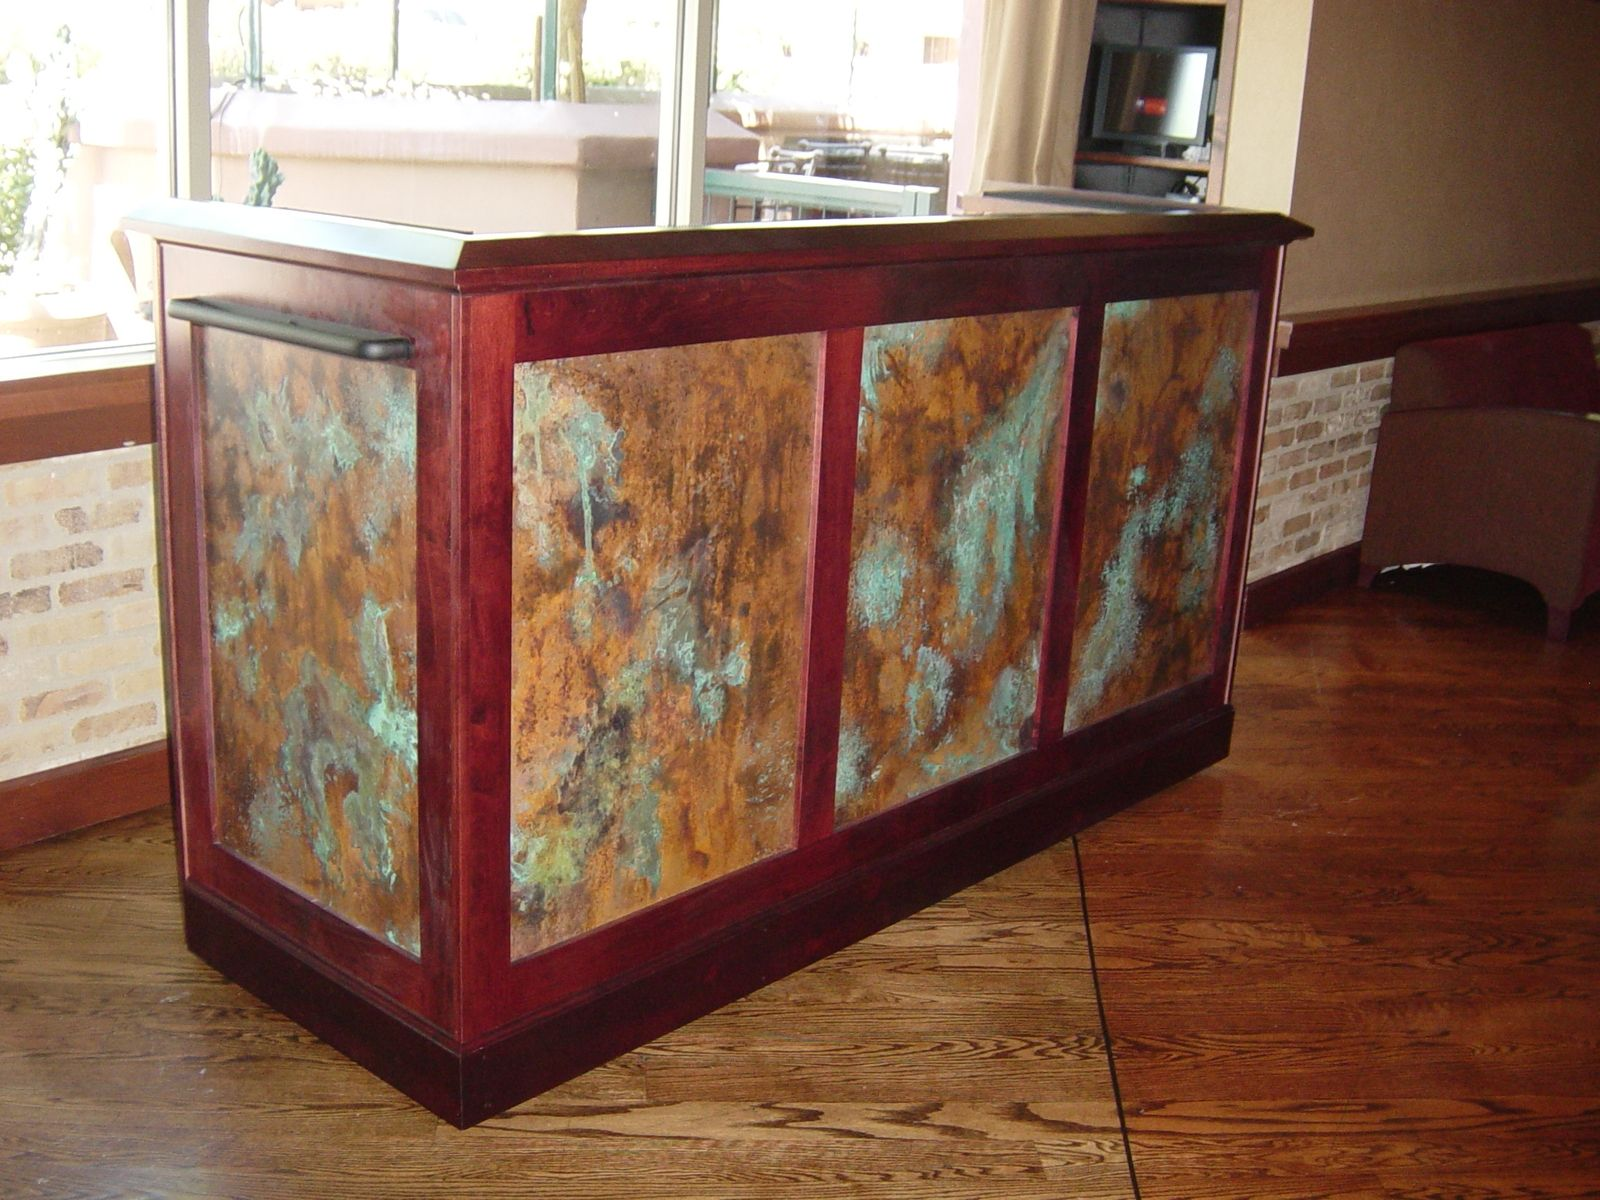 Hand Crafted Restaurant Mobile Bar by Ck Valenti Designs, Inc ... on pulaski home bar, texas home bar, lexington home bar, log home bar, santa fe home bar, rustic home bar,